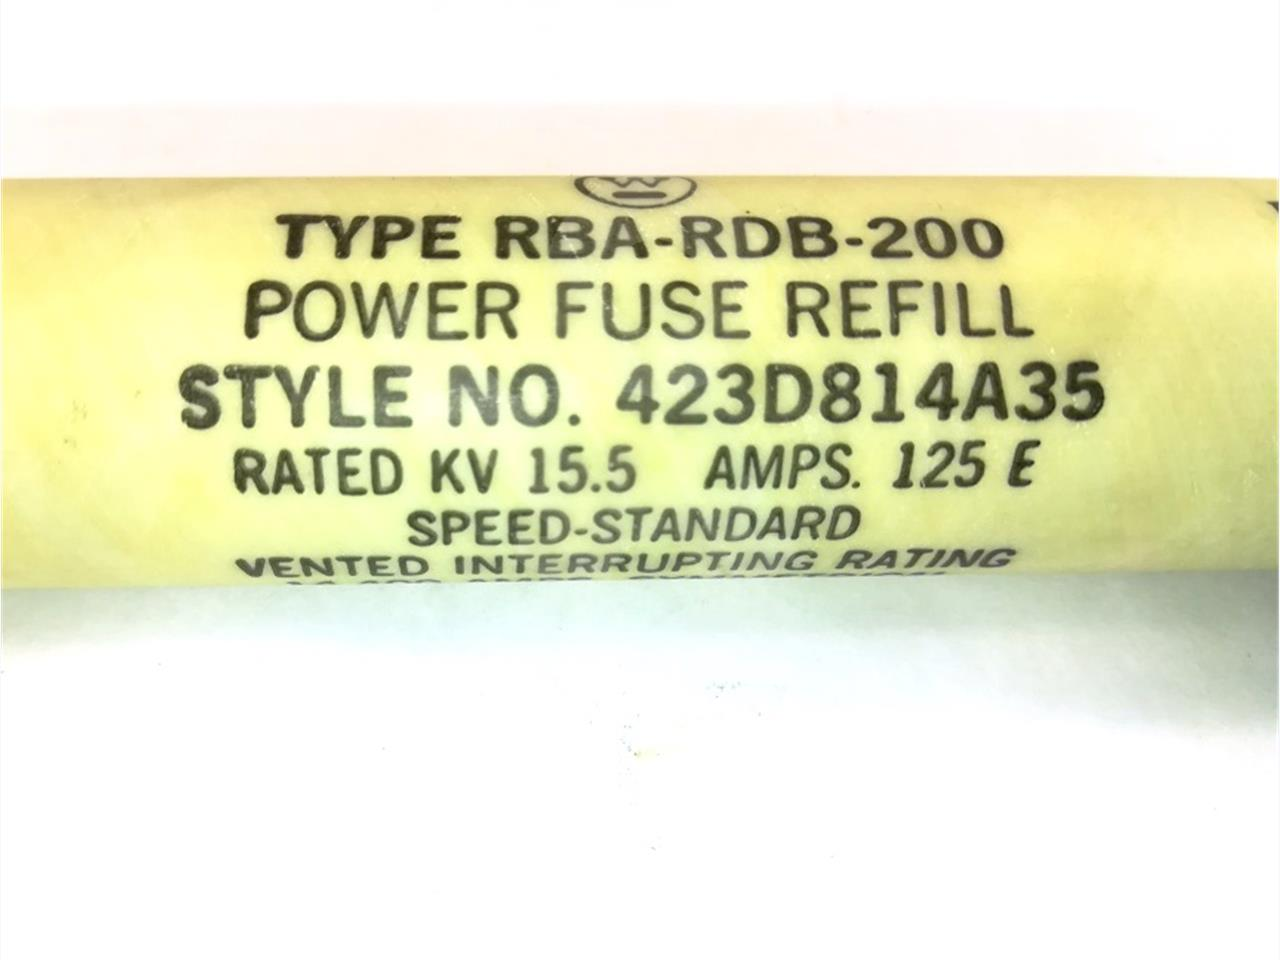 423D814A35 125E Westinghouse BRA-RDB-200 POWER FUSE ELEMENT E RATED FUSE, STANDARD SPEED